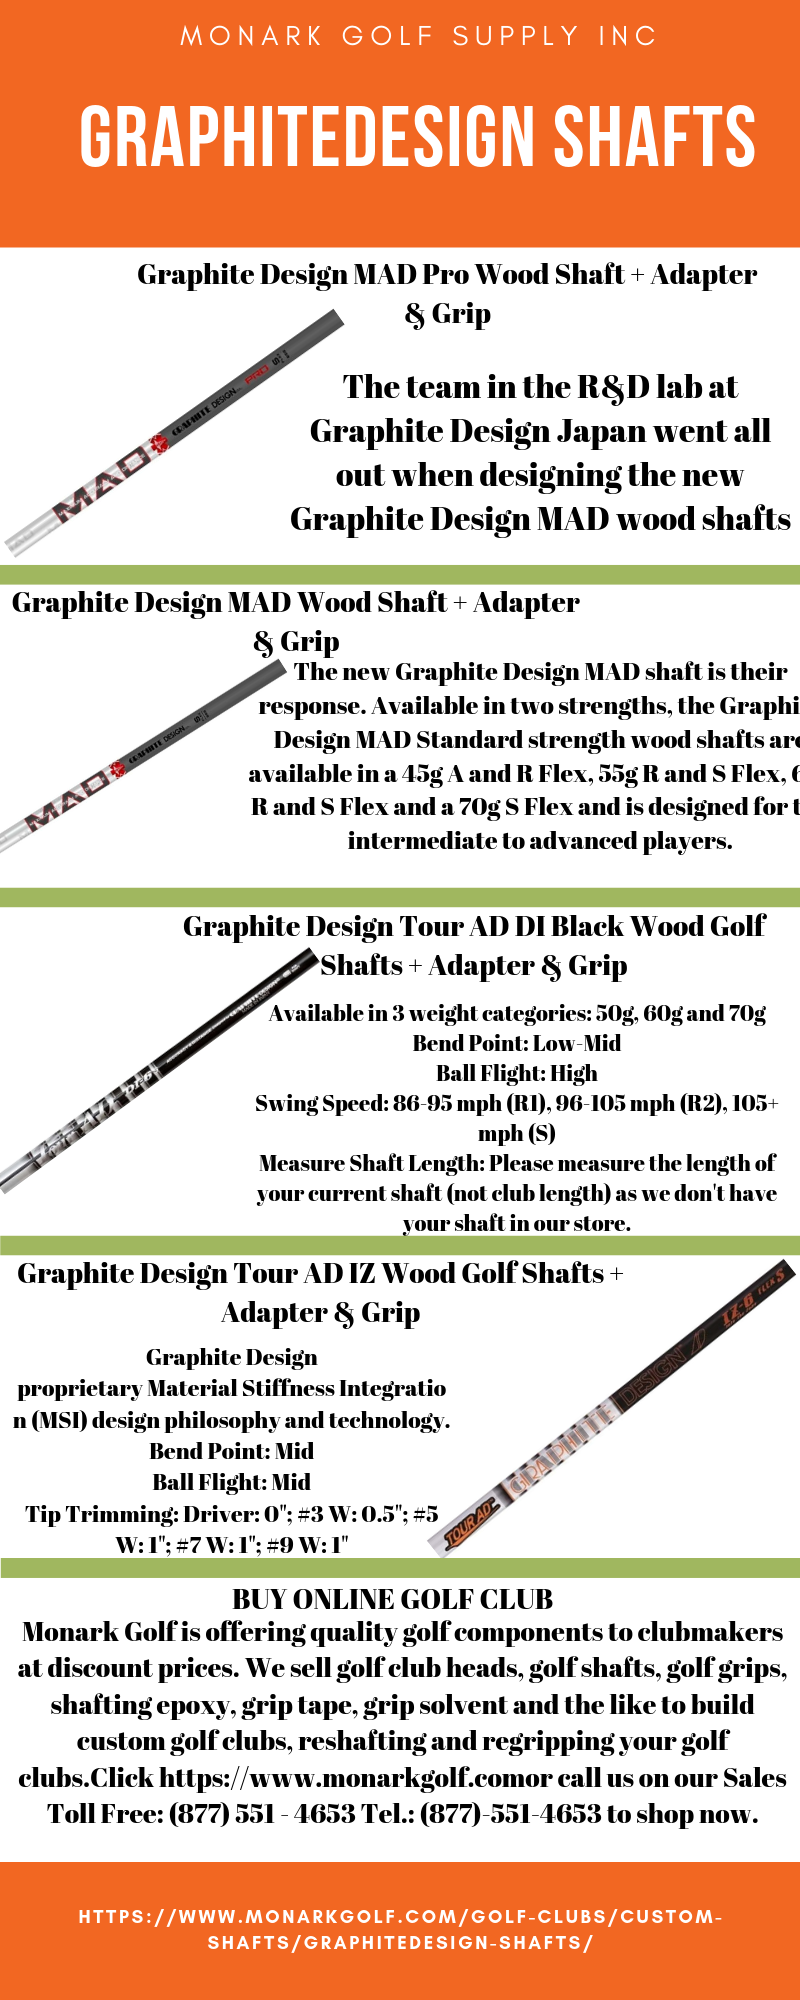 Graphitedesign Shafts Buy Golf Clubs Golf Club Sets R D Lab